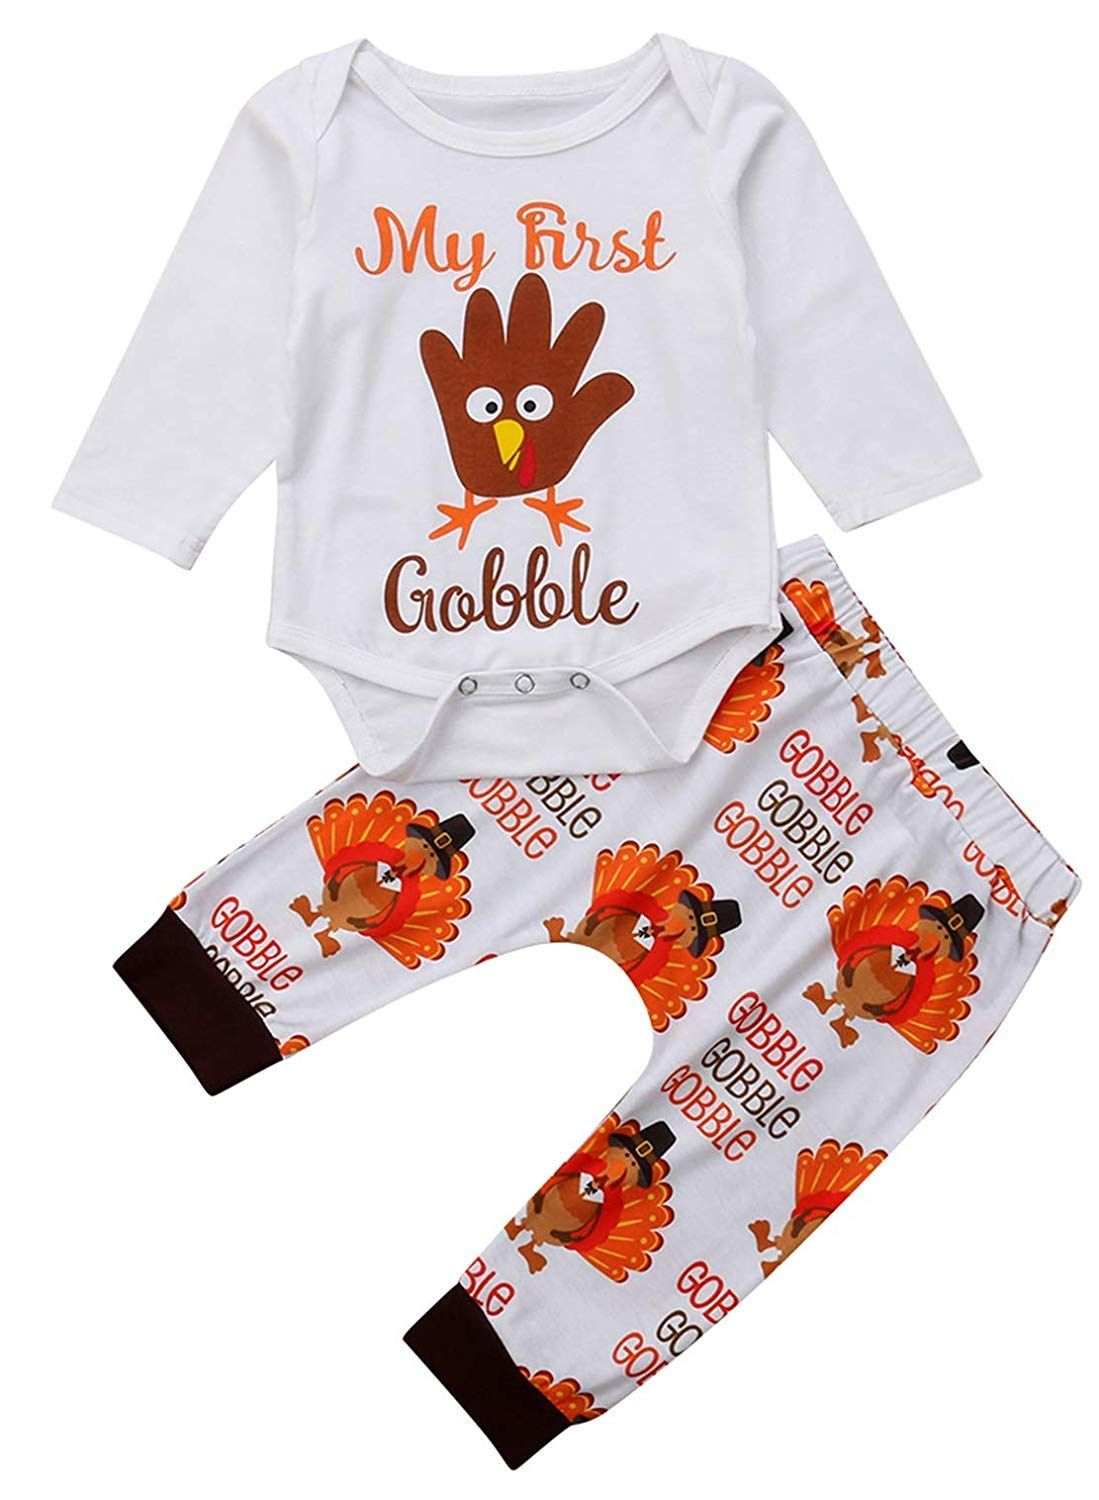 Infant Baby Boys Girls Clothes Set Turkey Thanksgiving Outfit My First Gobble Letter Print Long Boys And Girls Clothes Baby Kids Clothes Cute Baby Girl Outfits